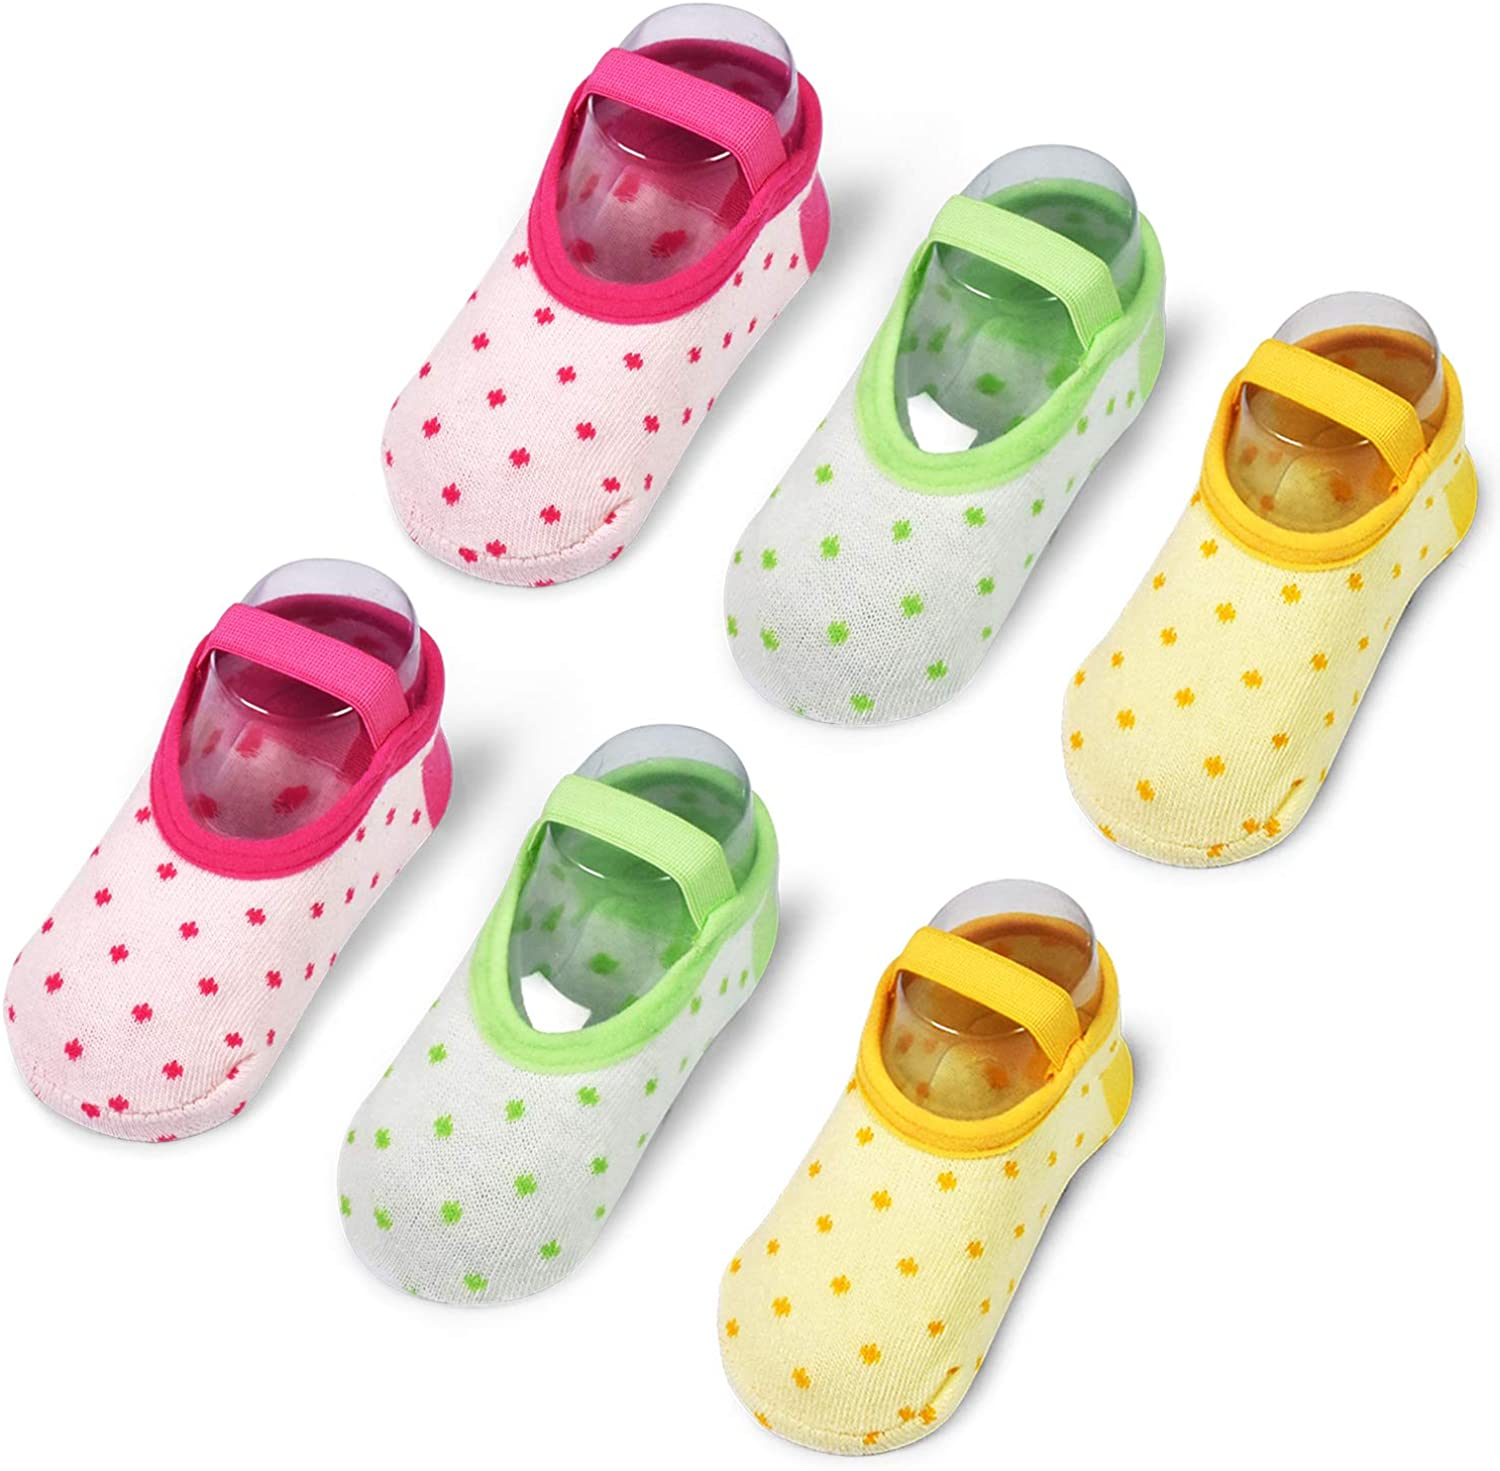 6 Pairs Toddler Girl Socks Baby Girl Gift Non Skid Ballet Socks with Strap Crew Socks for 12-30 Months 1-3 Years Old Baby